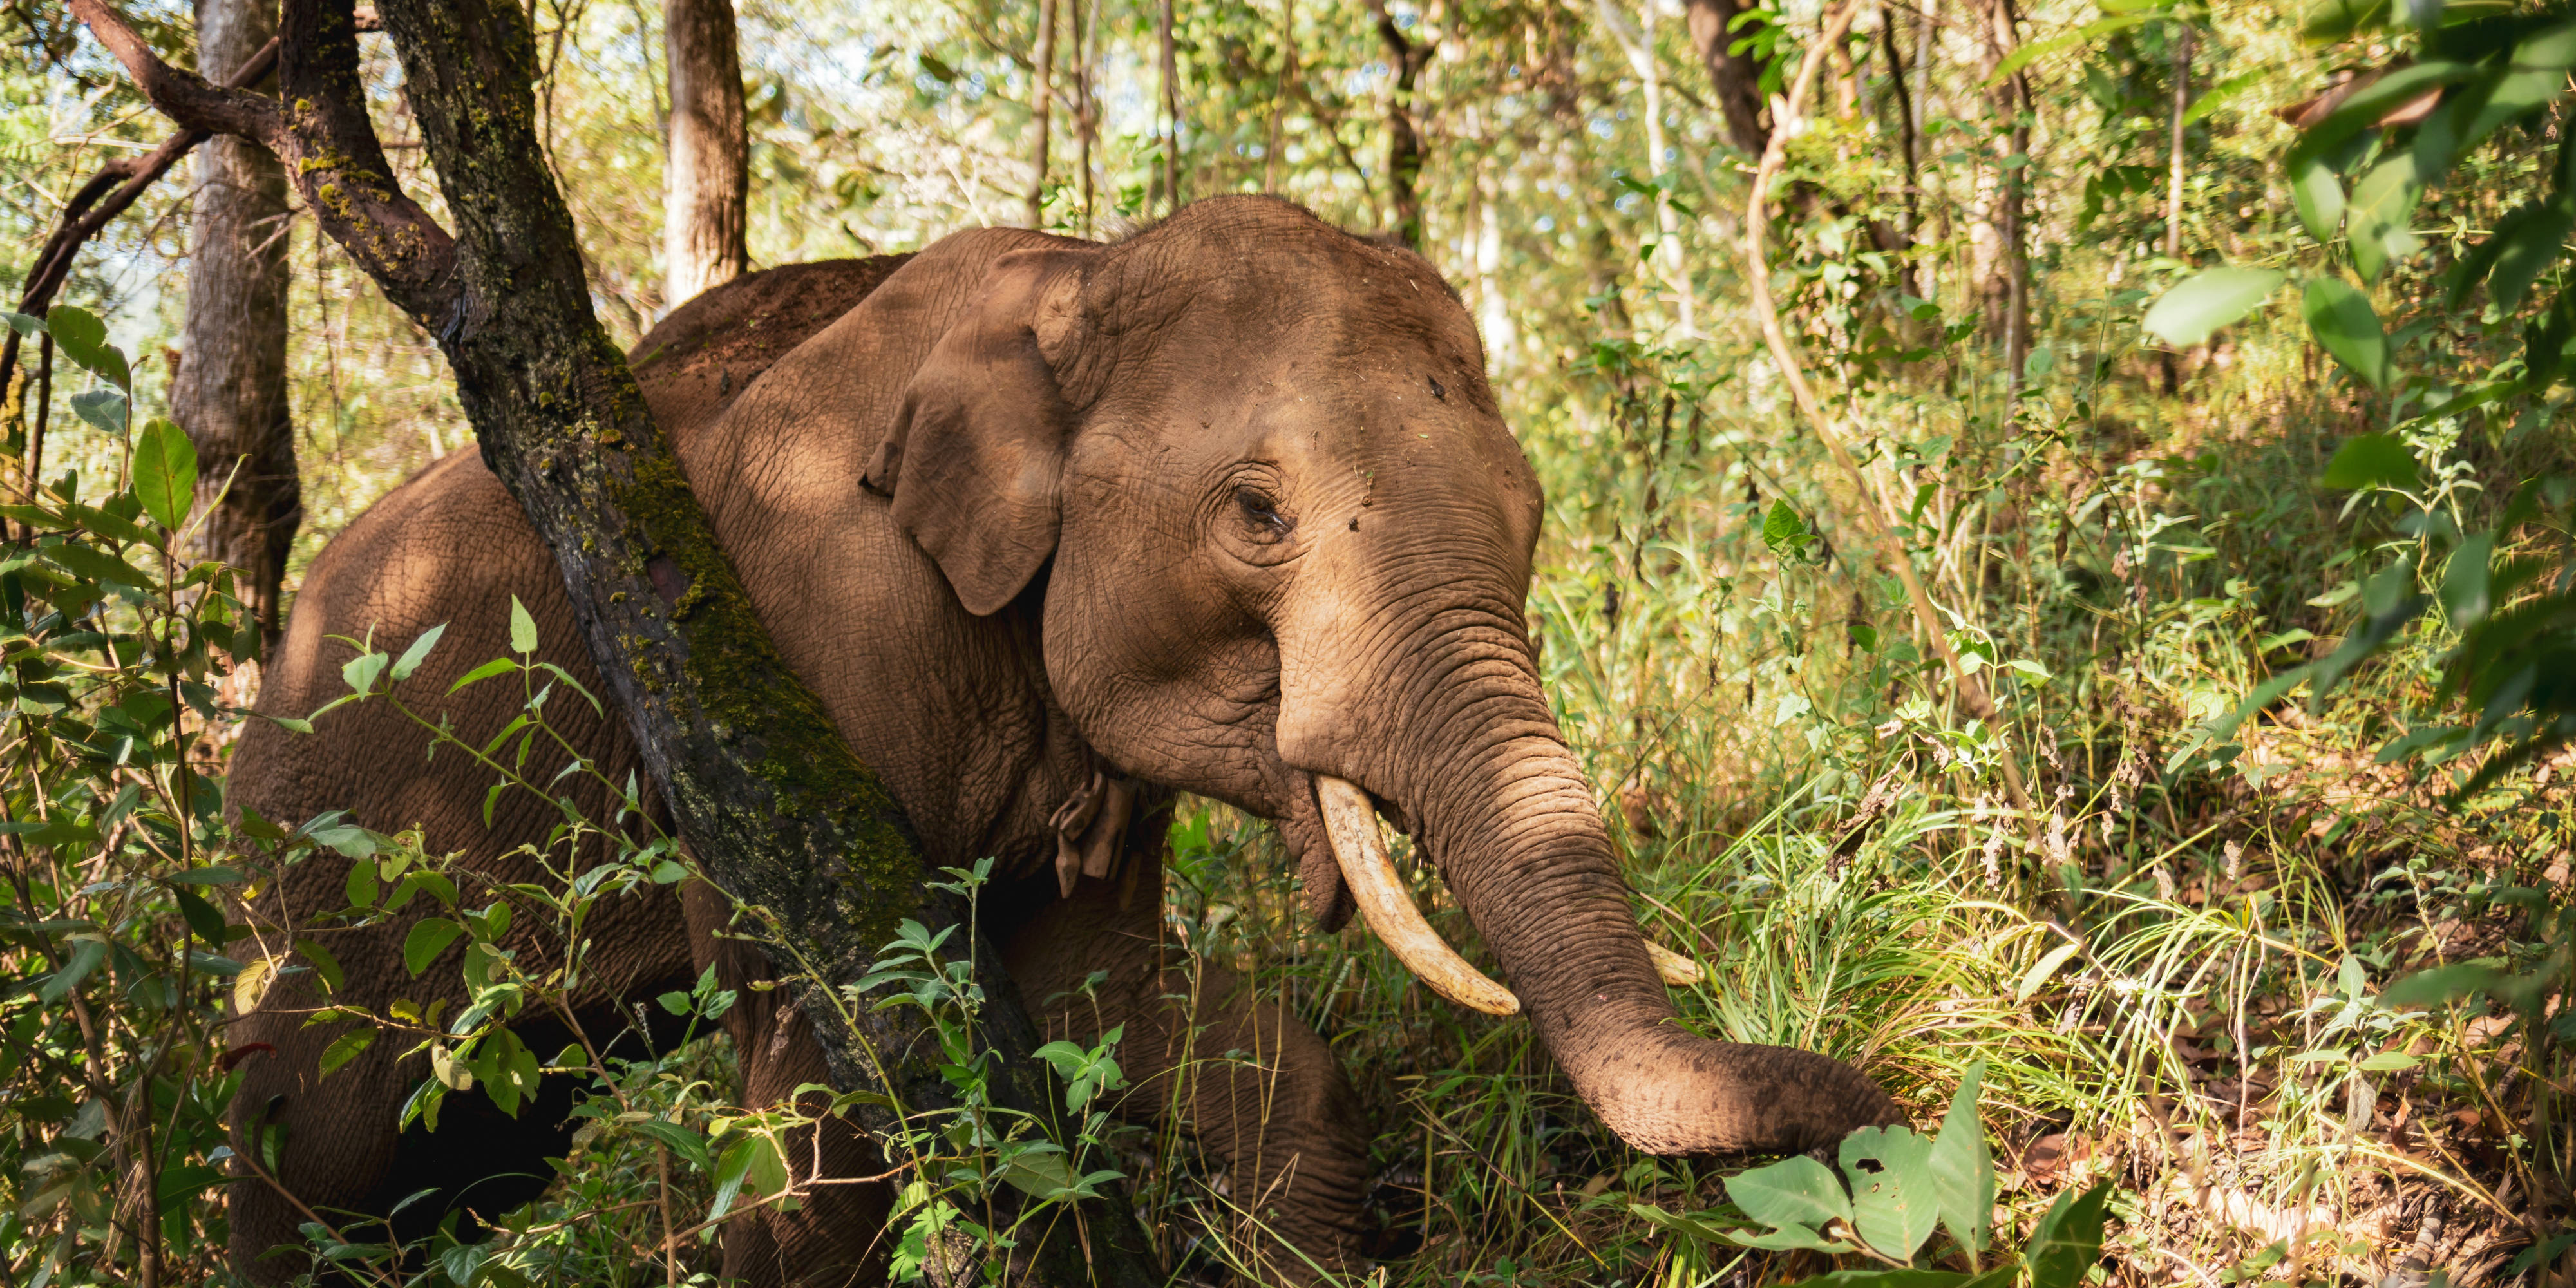 An Asian elephant forages in the forest of Chiang Mai province in Thailand. Volunteering with these gentle giants is one of the best animal volunteer programs abroad.